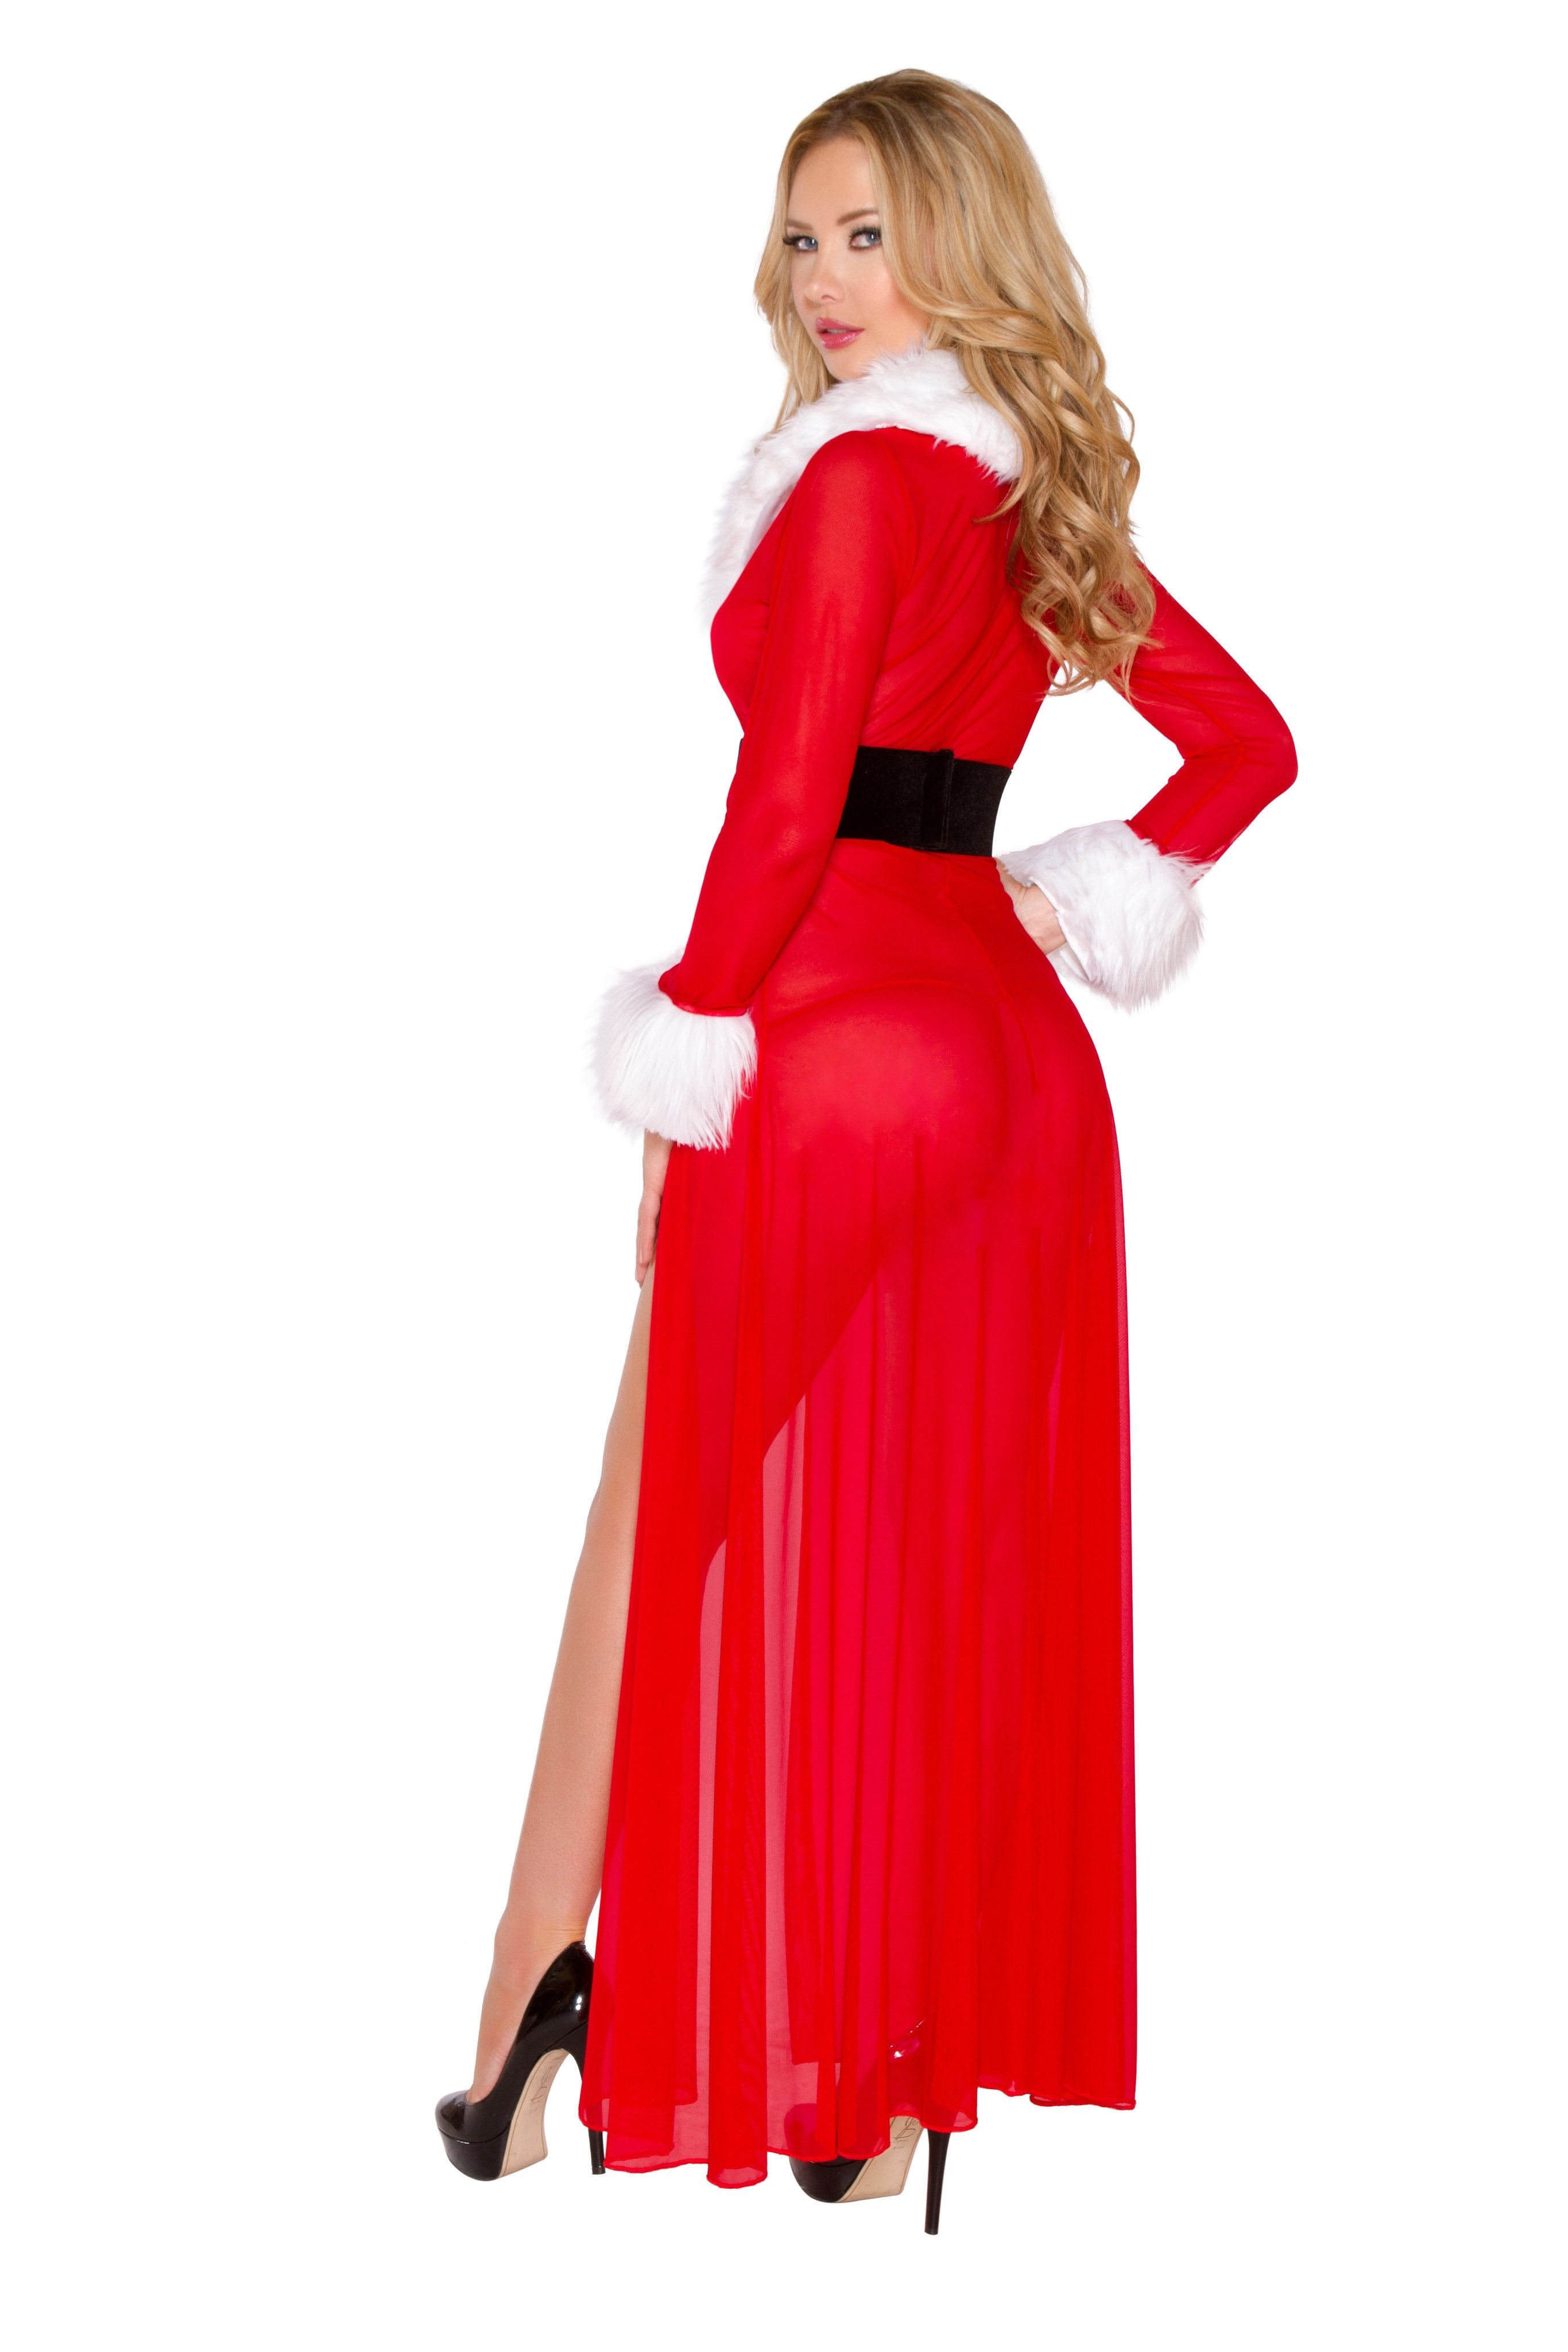 3pc Miss Claus Envy - PlaythingsMiami